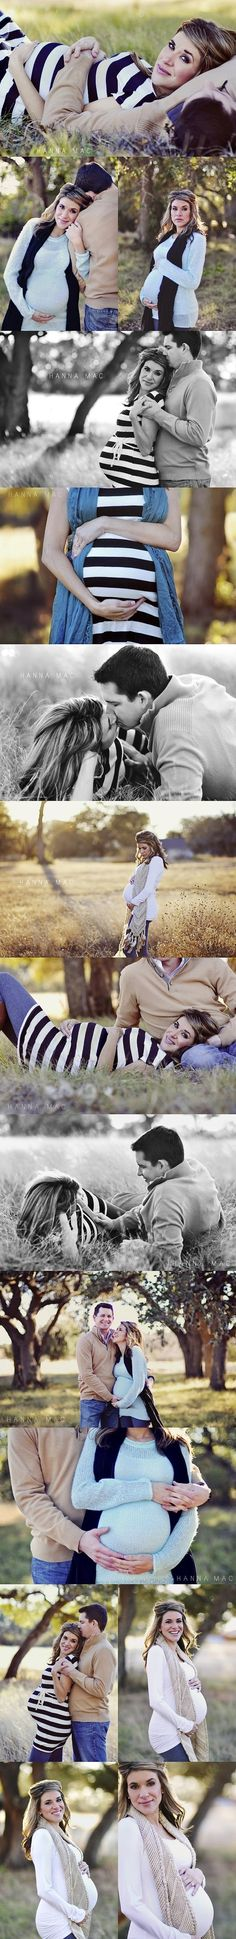 Pregnancy pictures, I like these.. not your typical